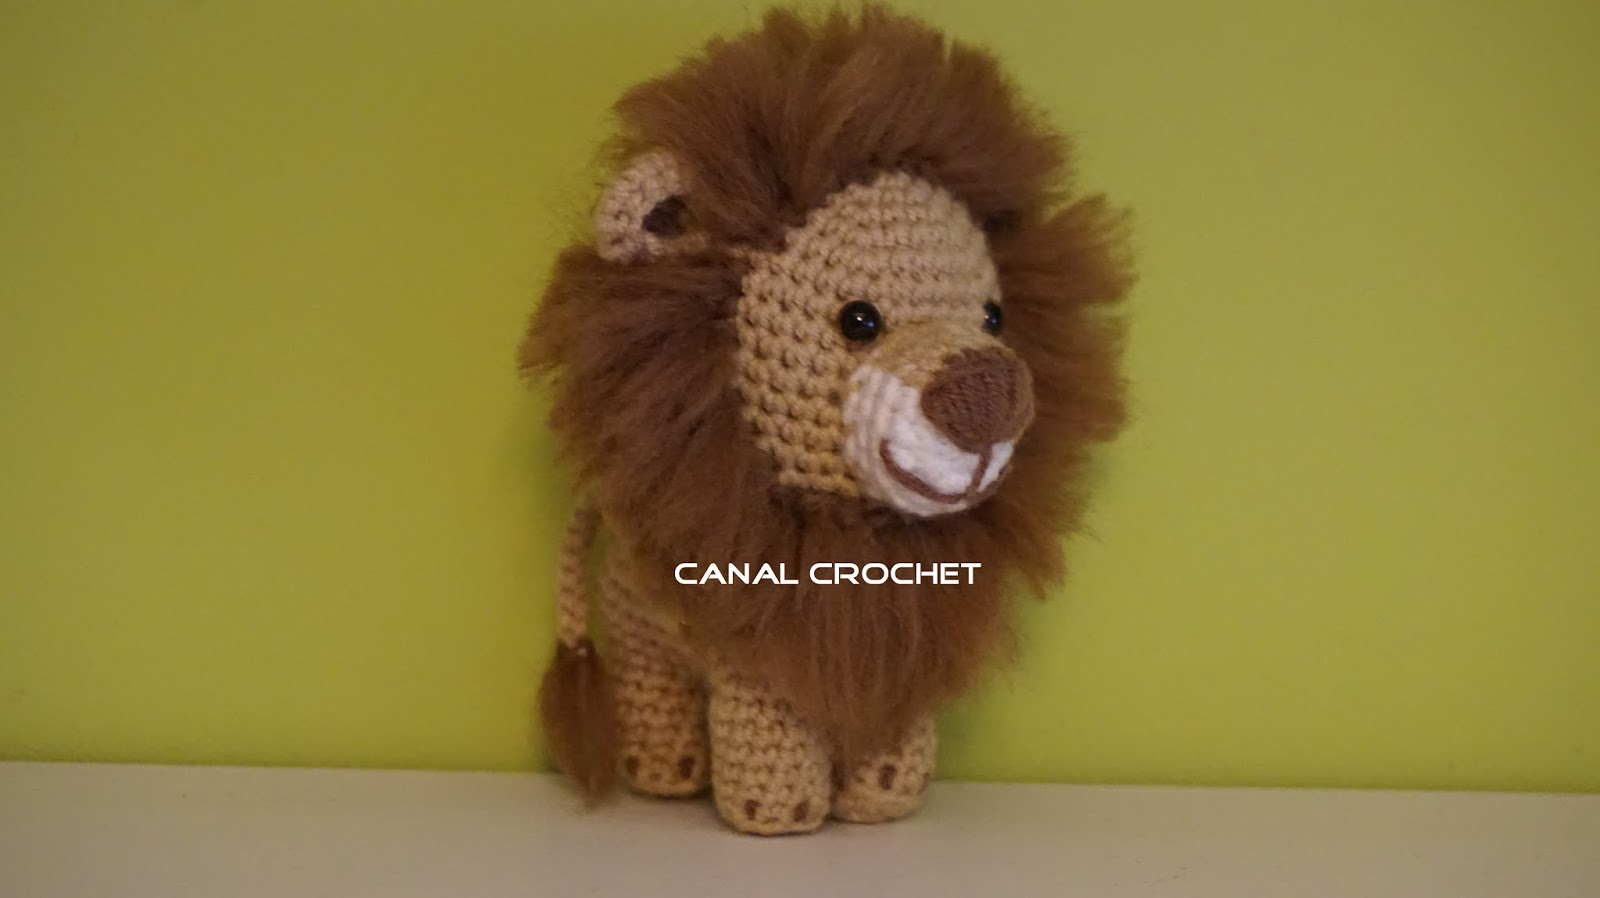 canal crochet le n amigurumi tutorial. Black Bedroom Furniture Sets. Home Design Ideas